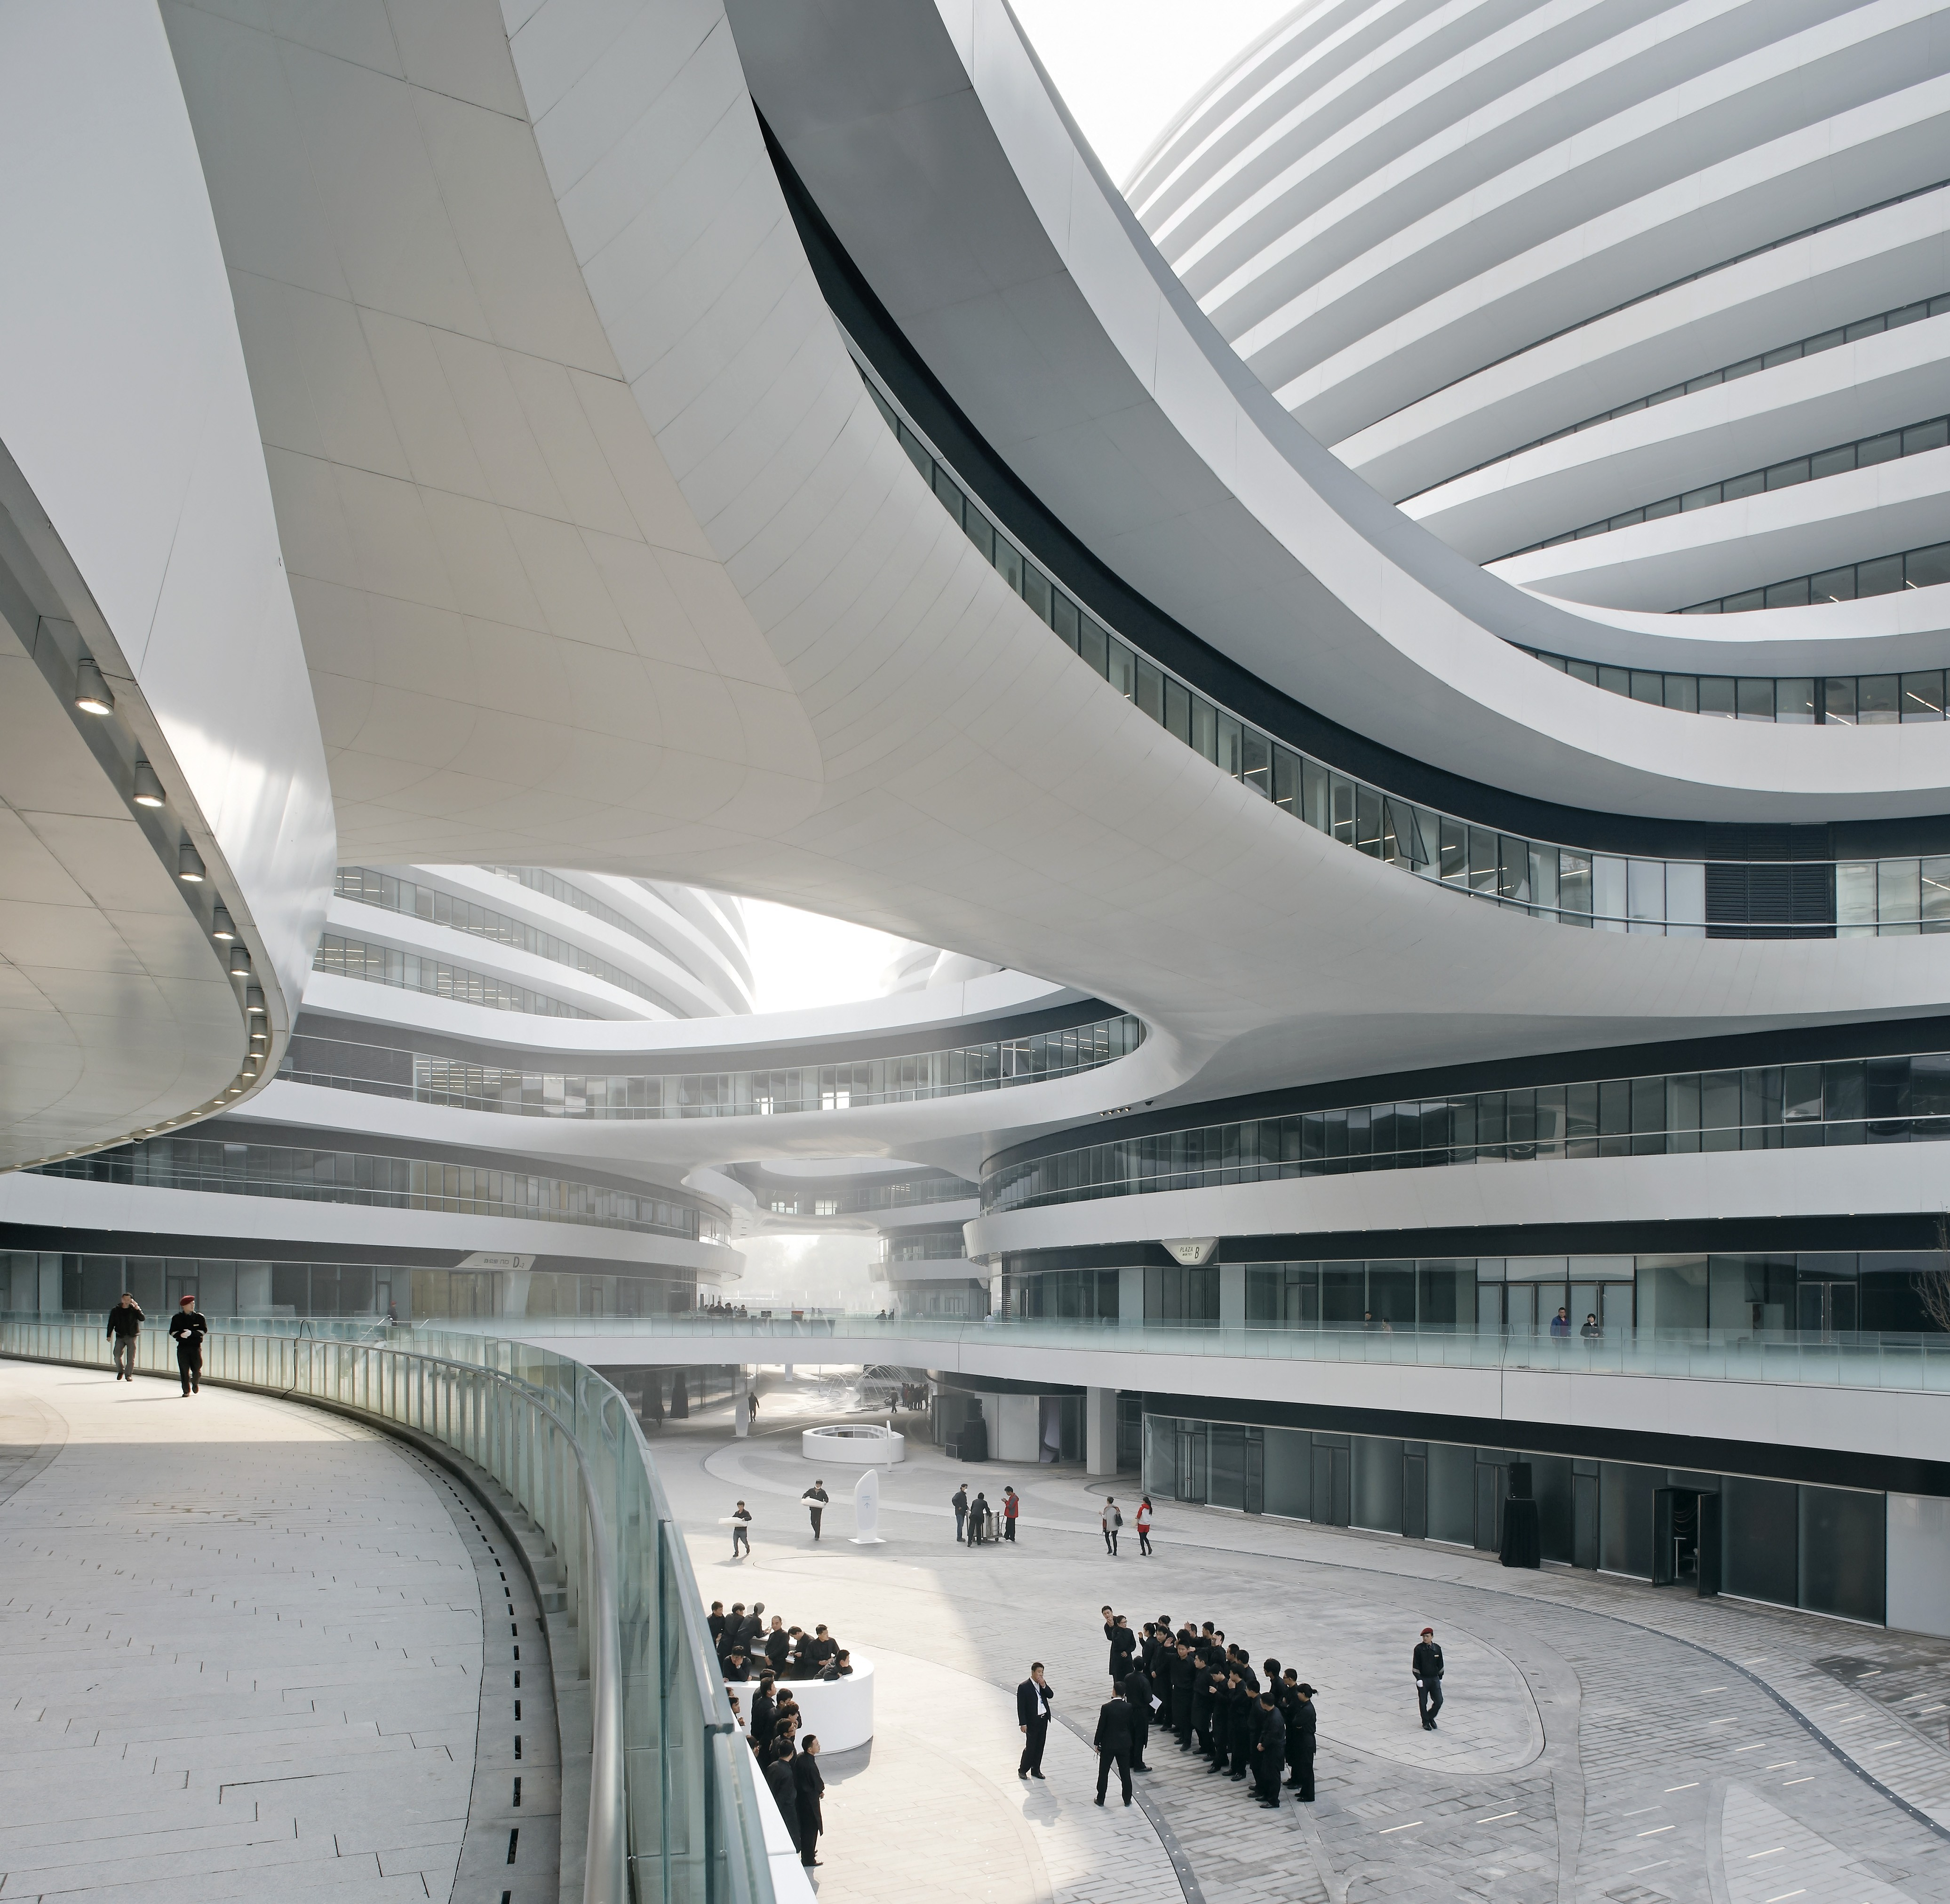 architectural buildings designs. Galaxy Soho Architectural Buildings Designs